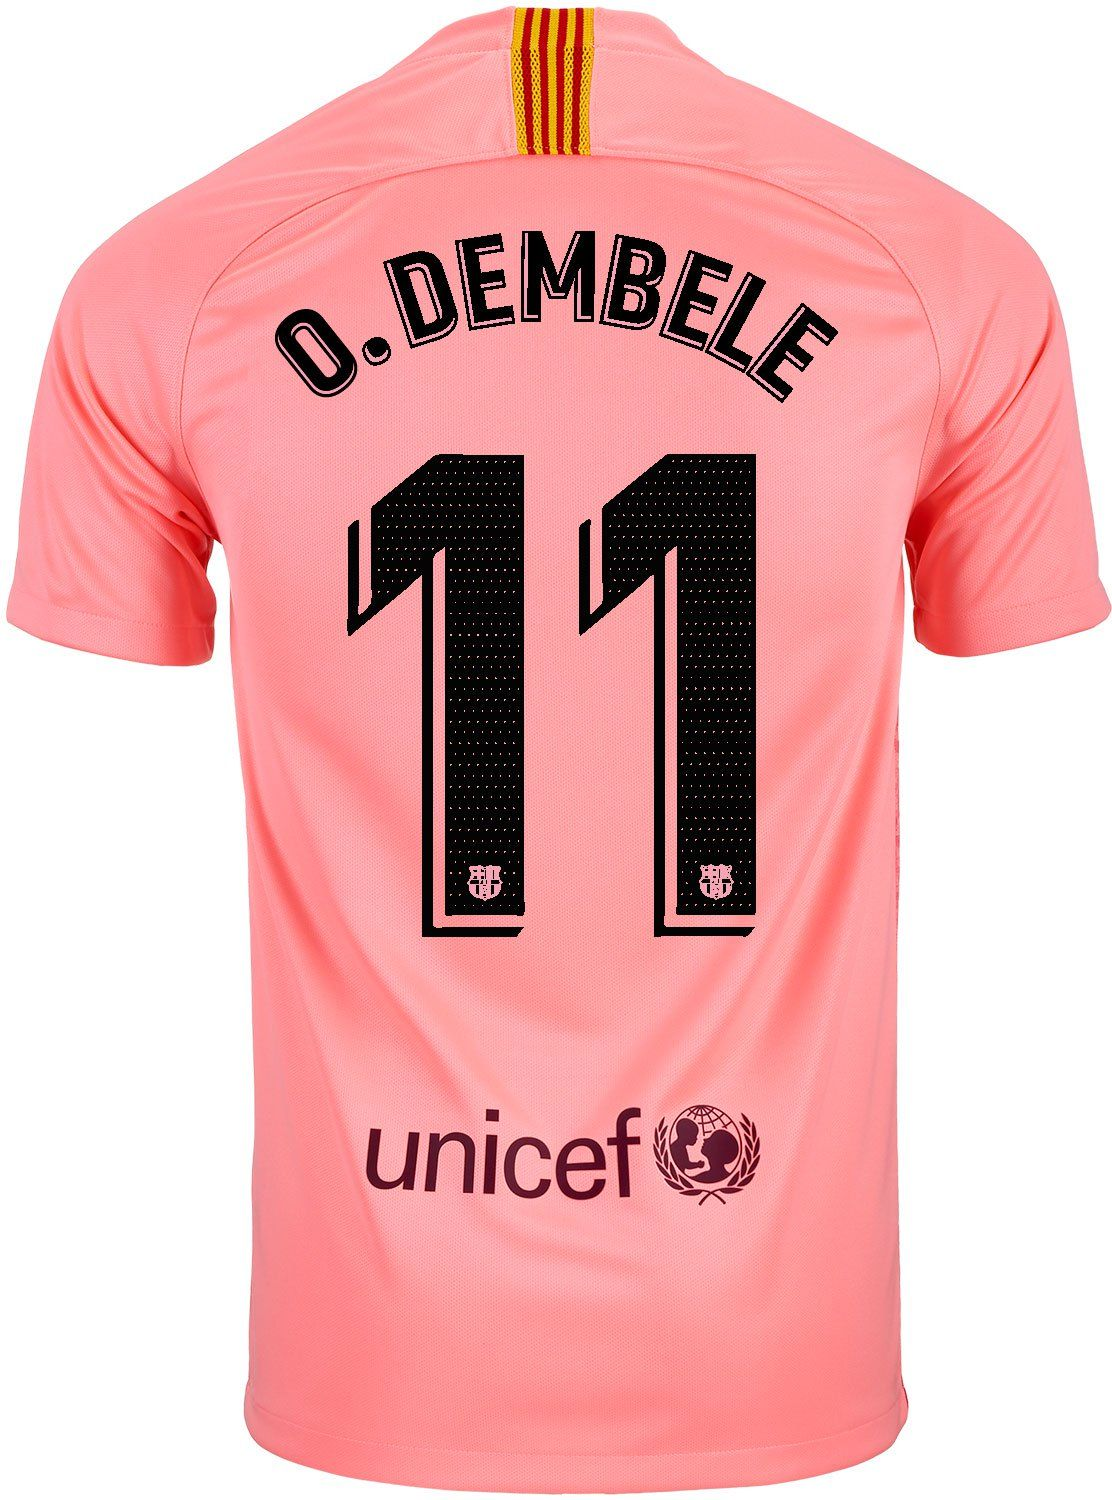 98ee50eb774 Shop for this 2018/19 Nike FC Barcelona Dembele 3rd Jersey today from  SoccerPro